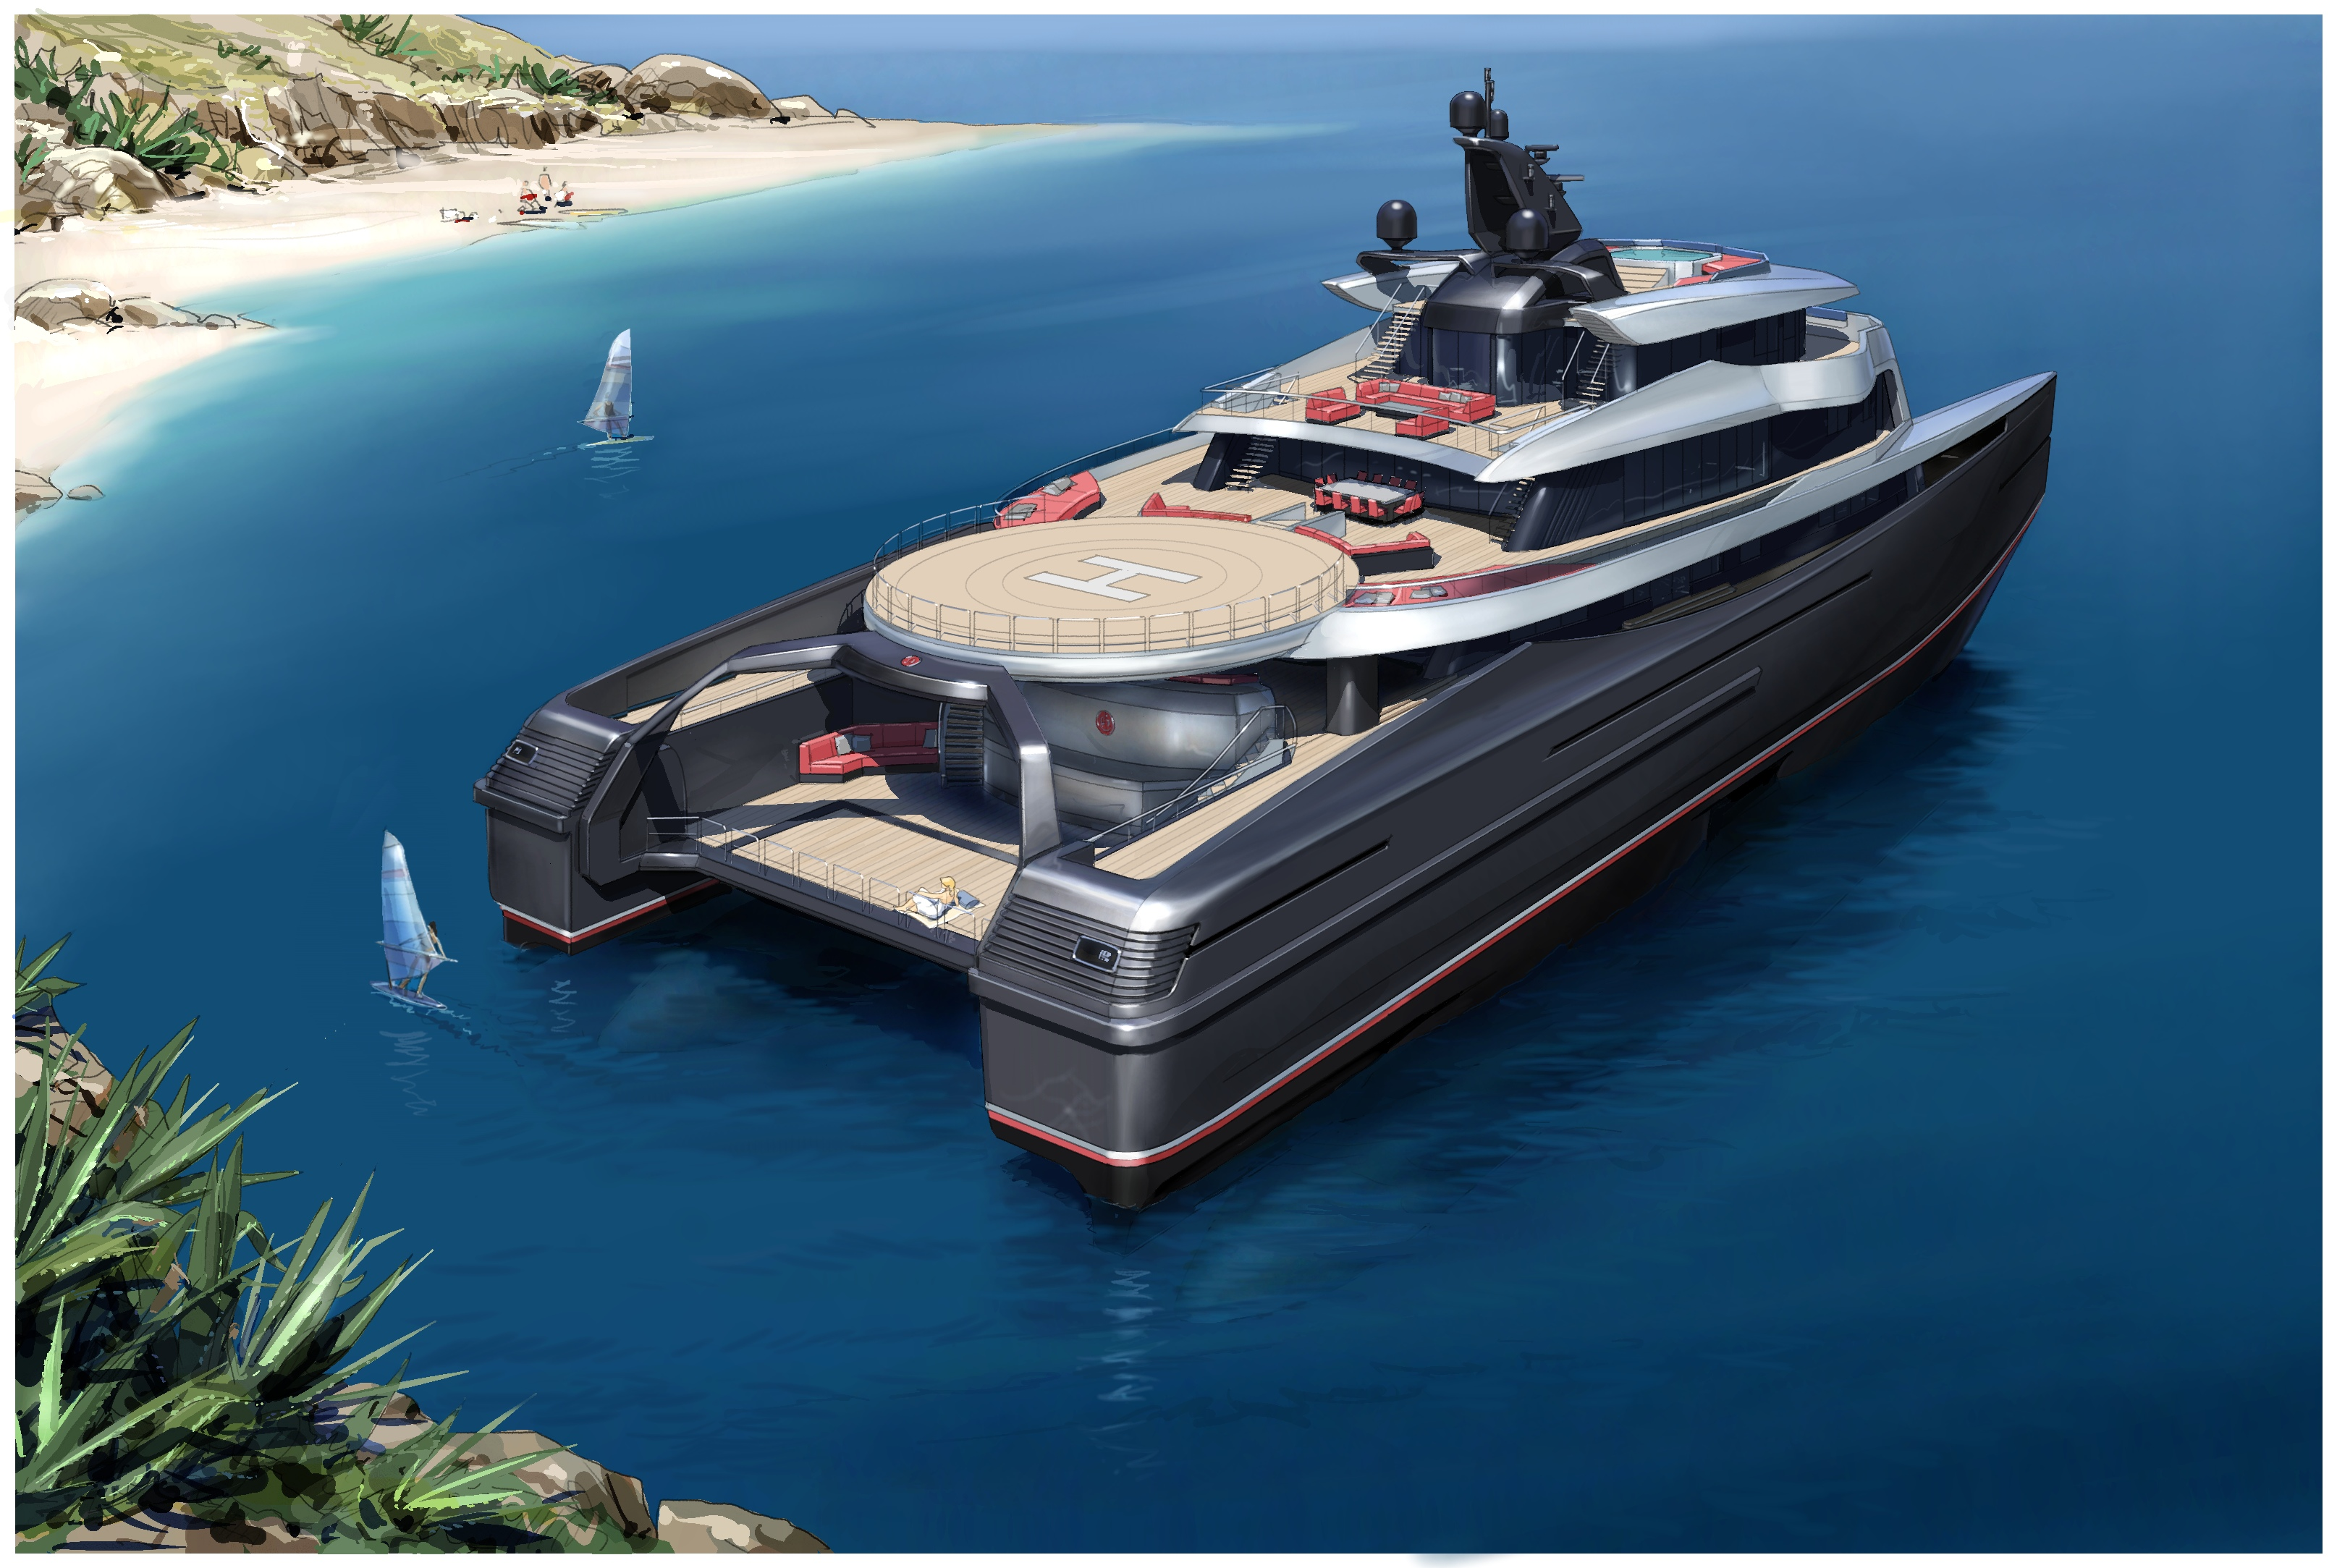 mega luxury yachts sale with 63m Swath on 63m Swath furthermore Mayan Queen Iv likewise Eclipse 73837 likewise Legend The 77m Soviet Icebreaker Turned Explorer Yacht 32317 also La Belle Il Primo Yacht Super Lusso Al Mondo Per Sole Donne.